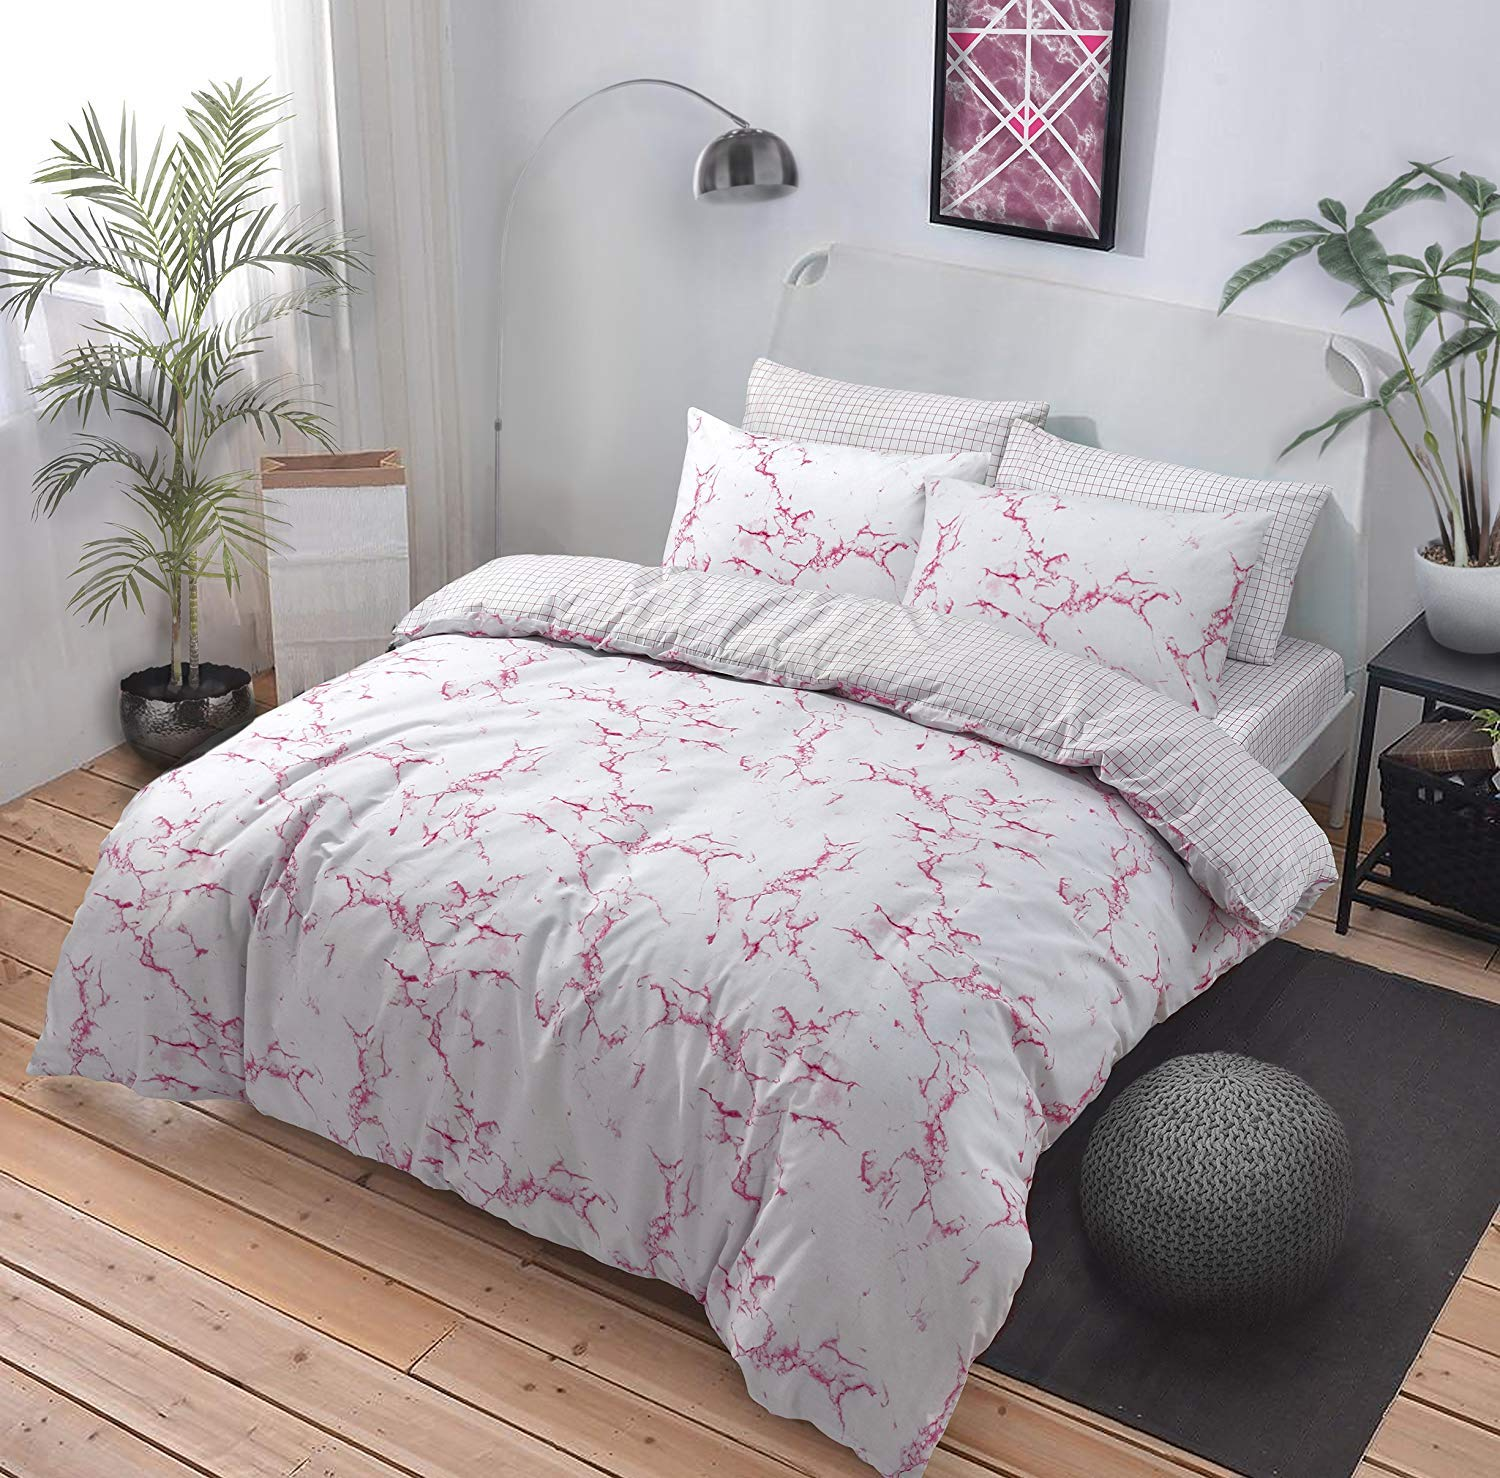 Articulate Duvet Cover Set - Marble Grey Design - For a Dashing Man - Includes Duvet Cover & Pillow Cases Only - Double Pieridae